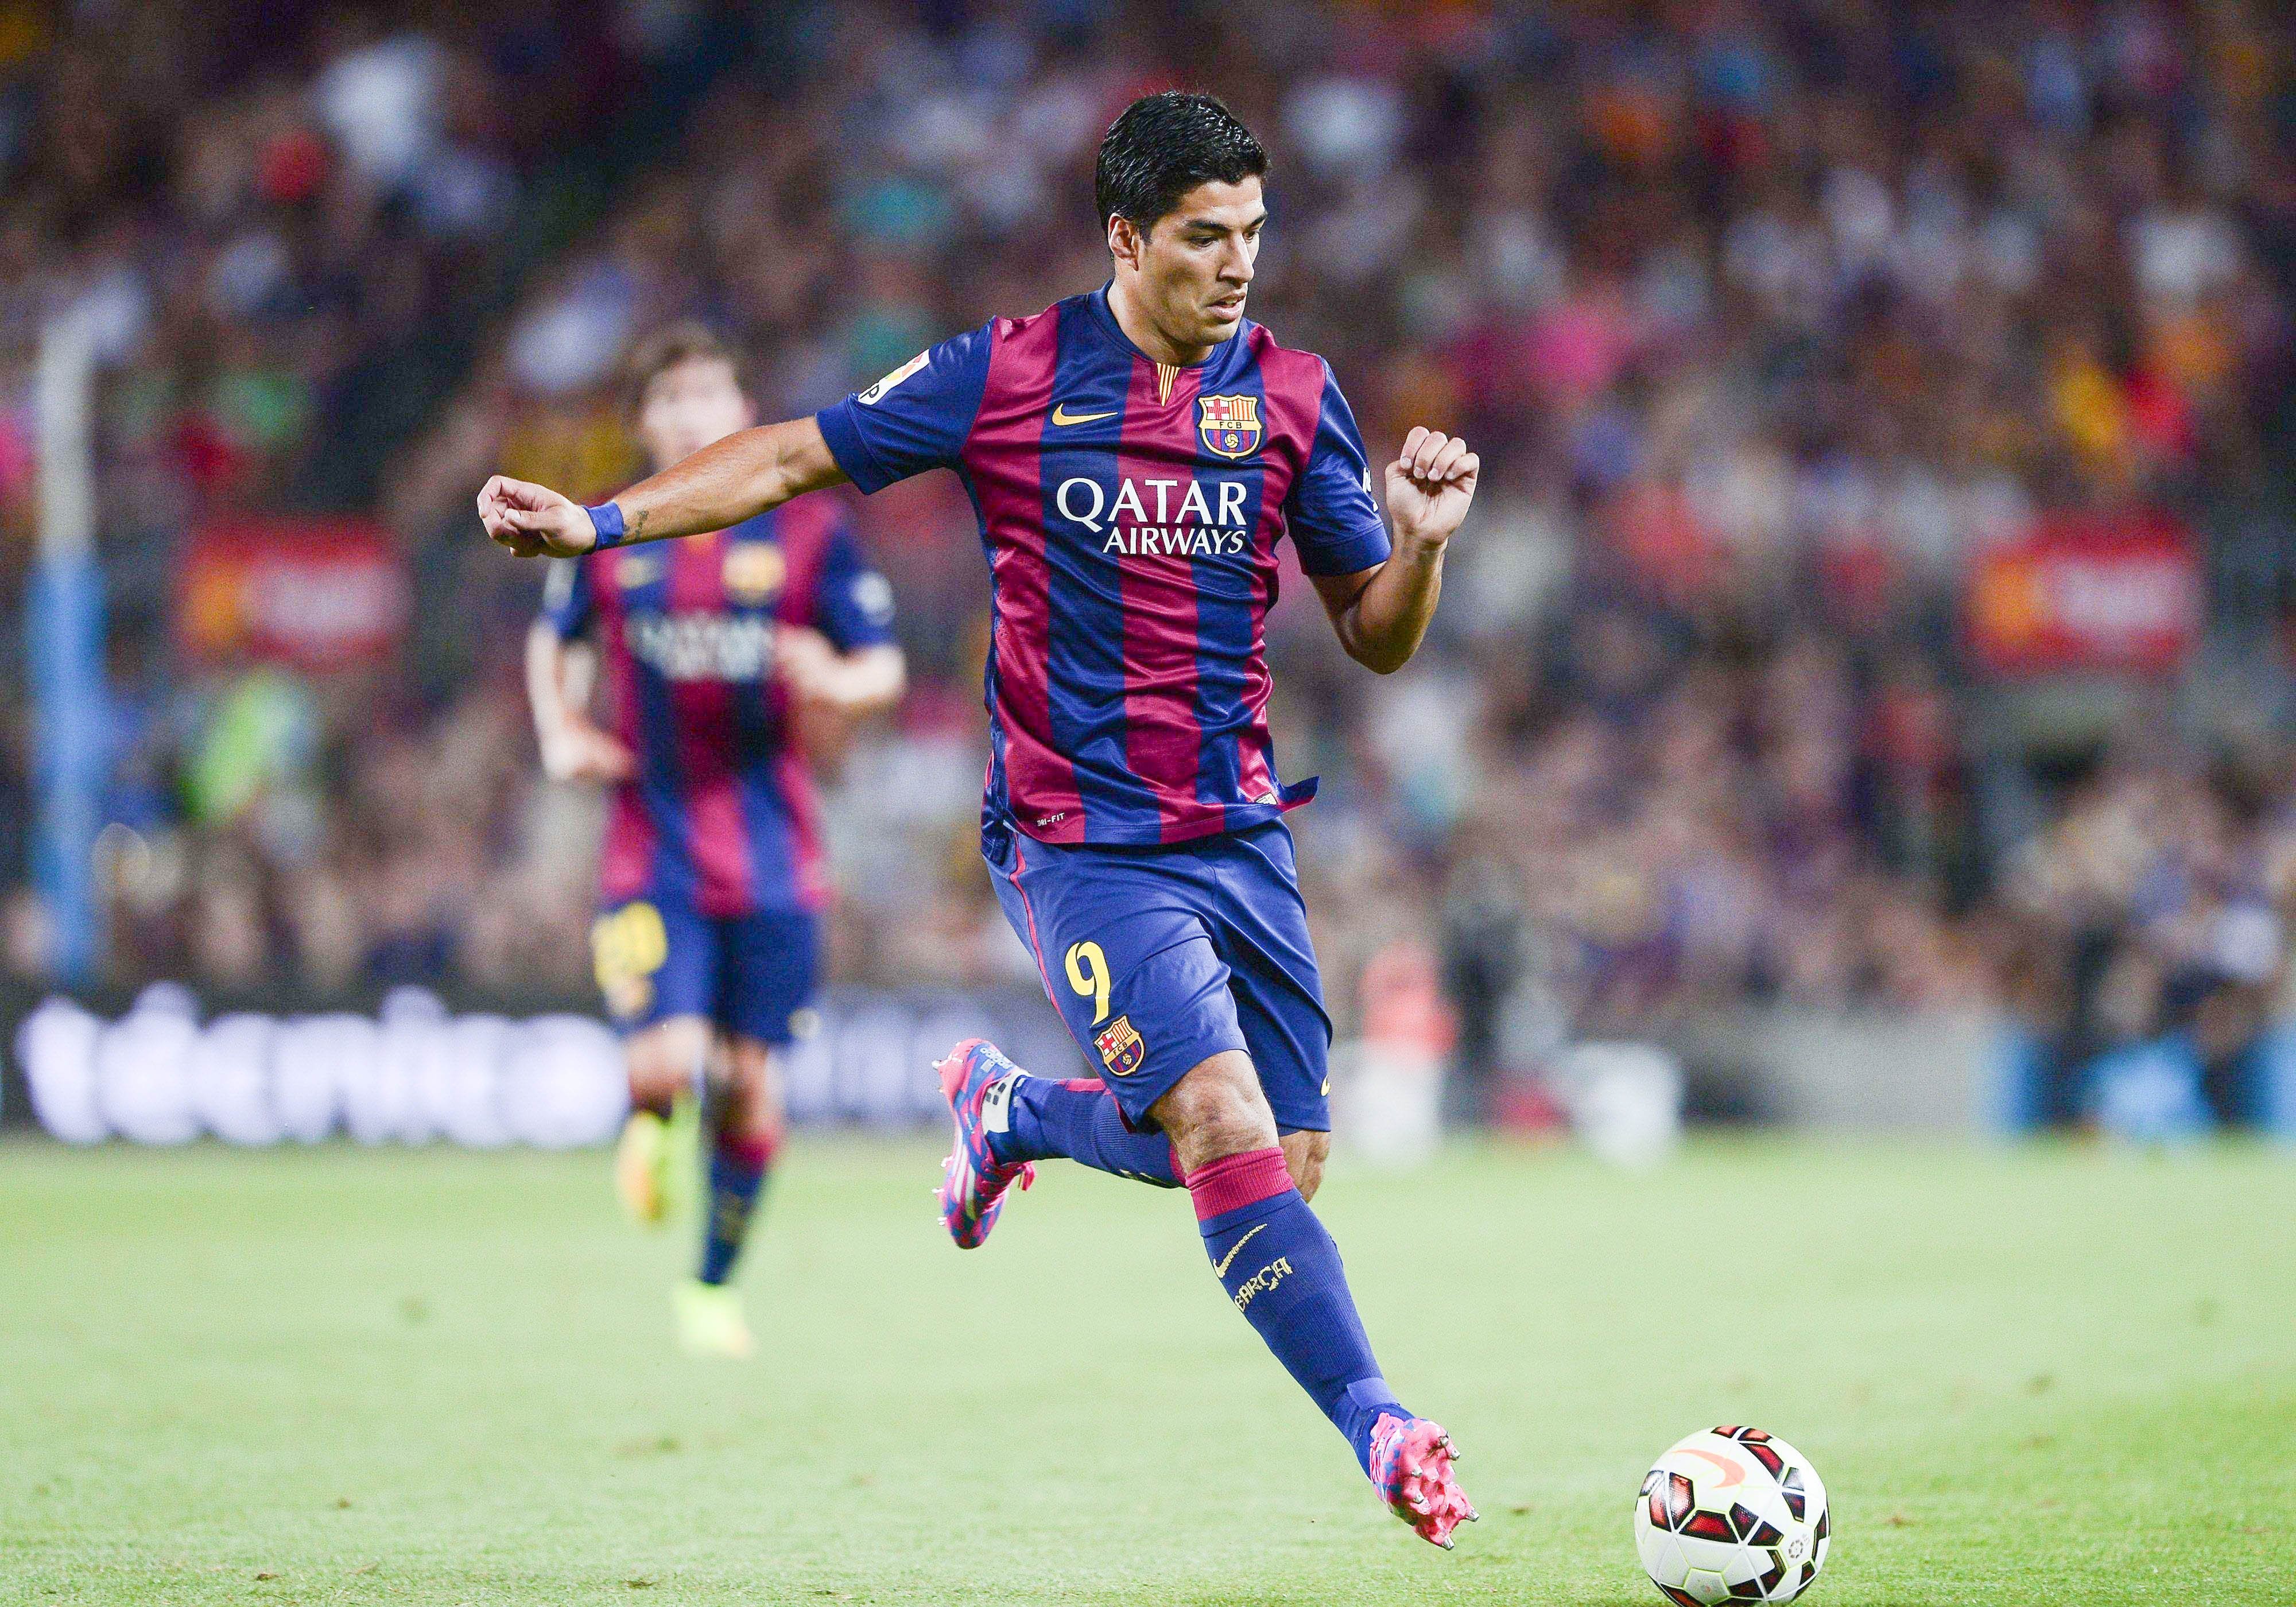 New Hollywood Movies Hd Wallpapers Luis Suarez Amazing Wallpapers High Resolution All Hd